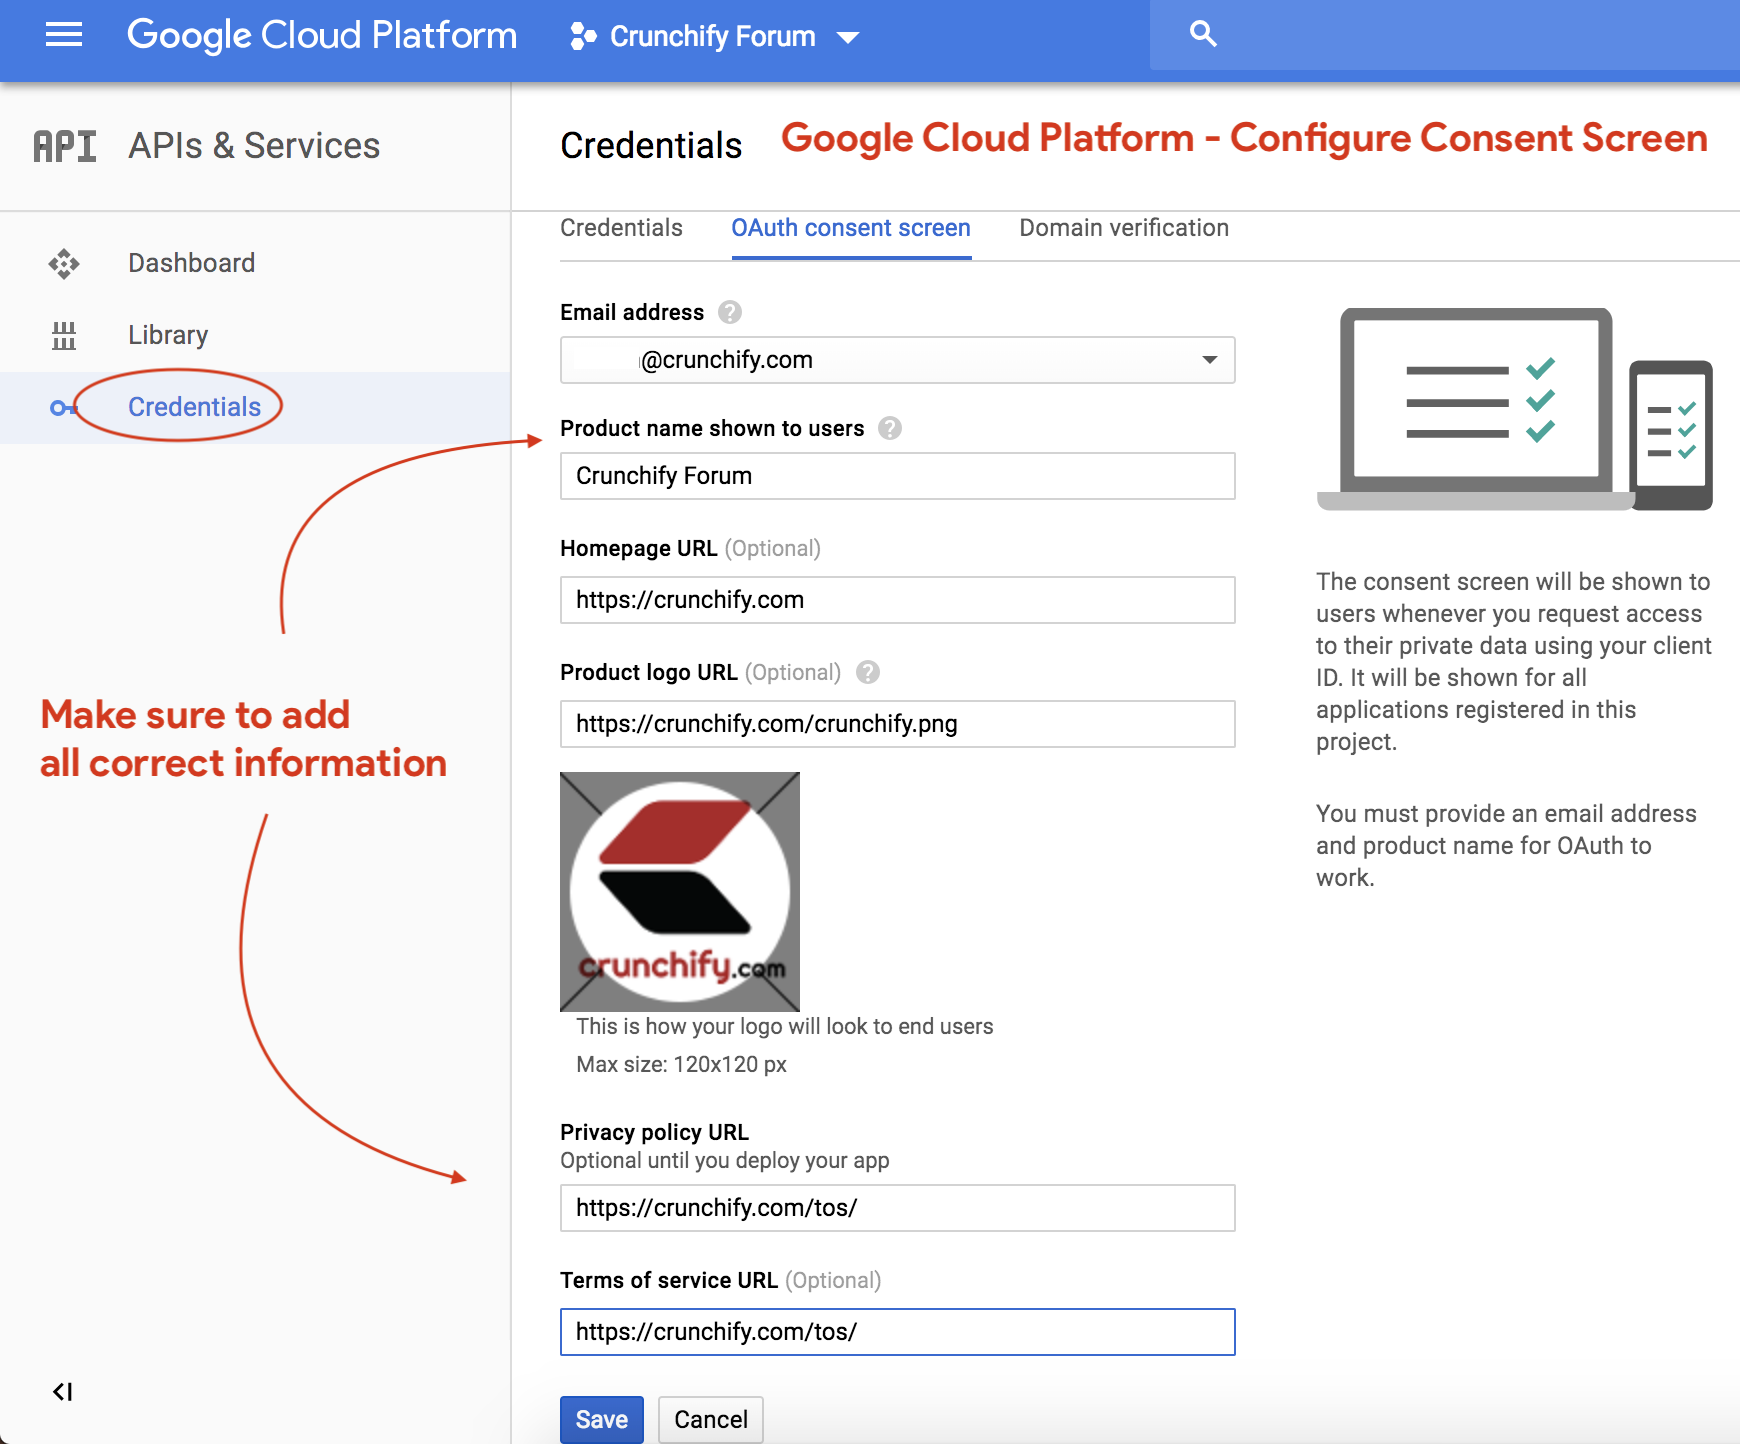 Google Cloud Platform - Configure Consent Screen